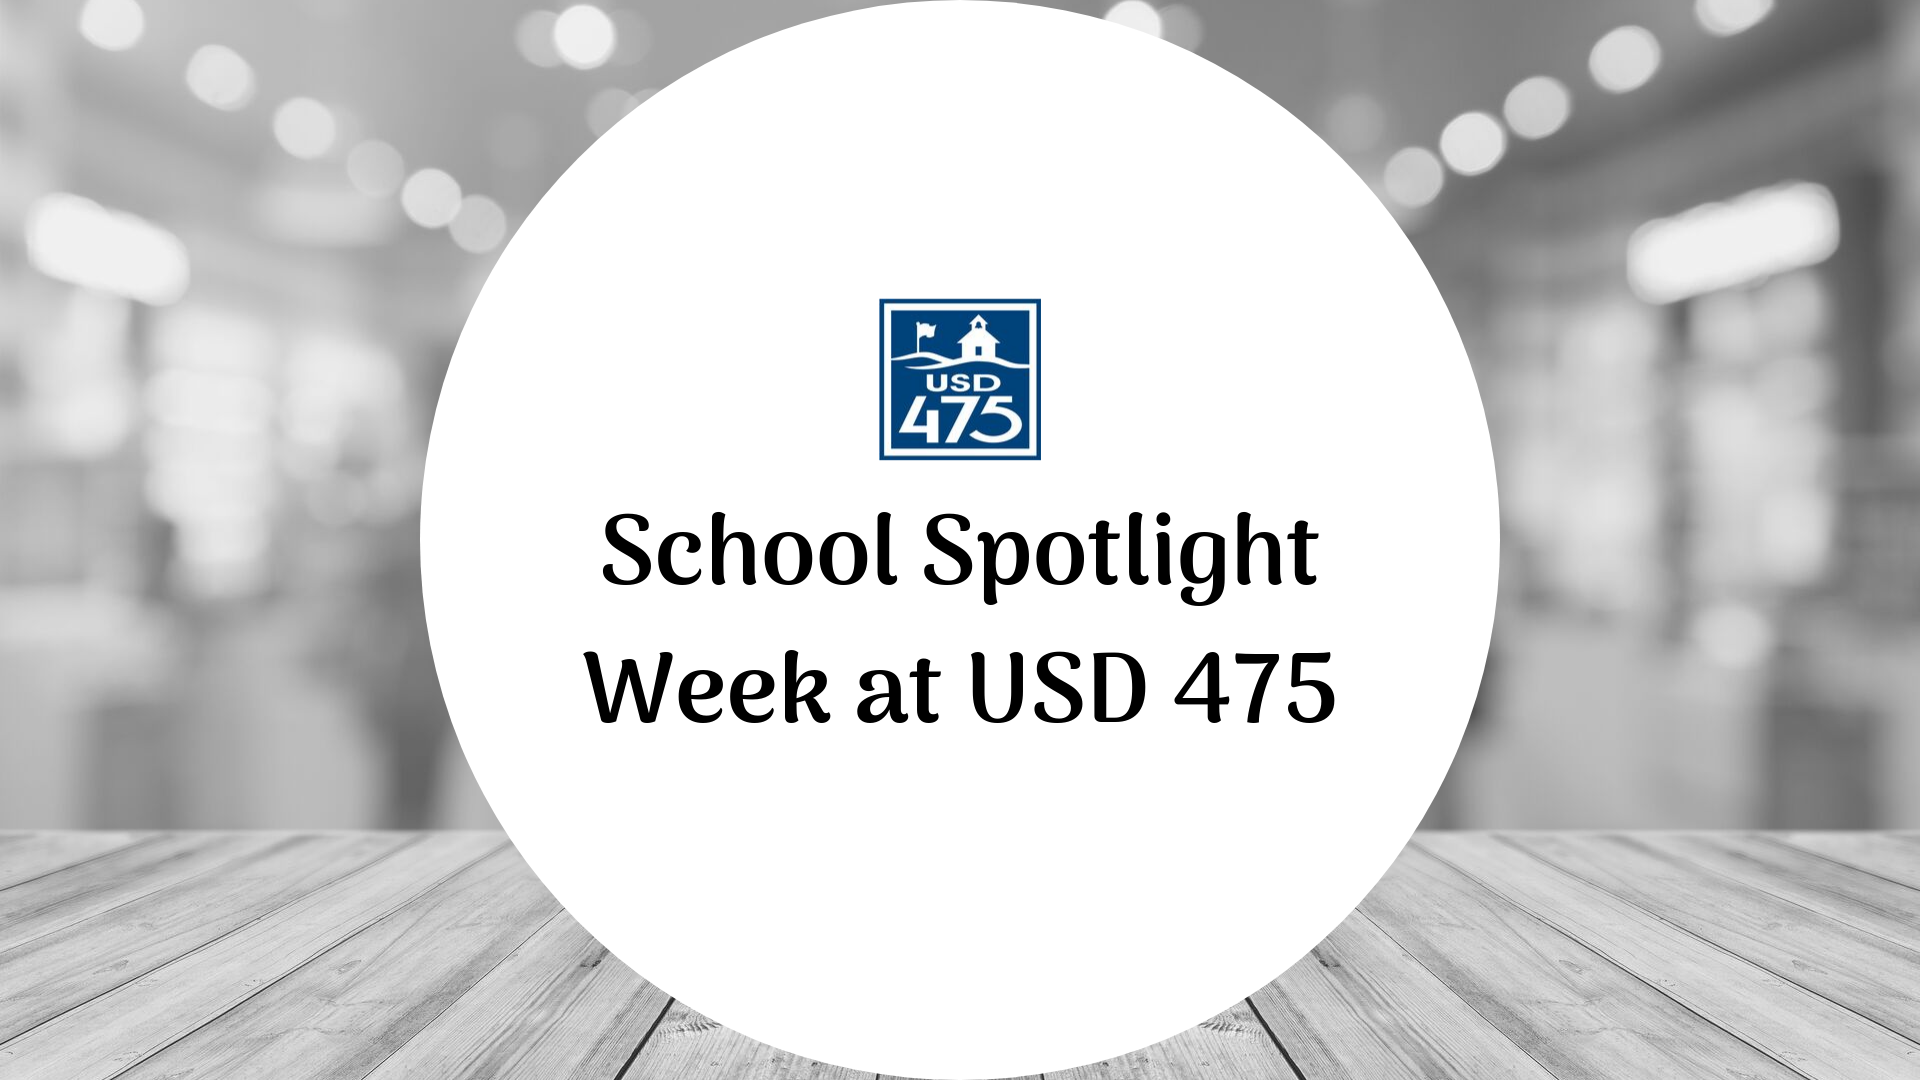 School Spotlight Week at USD 475